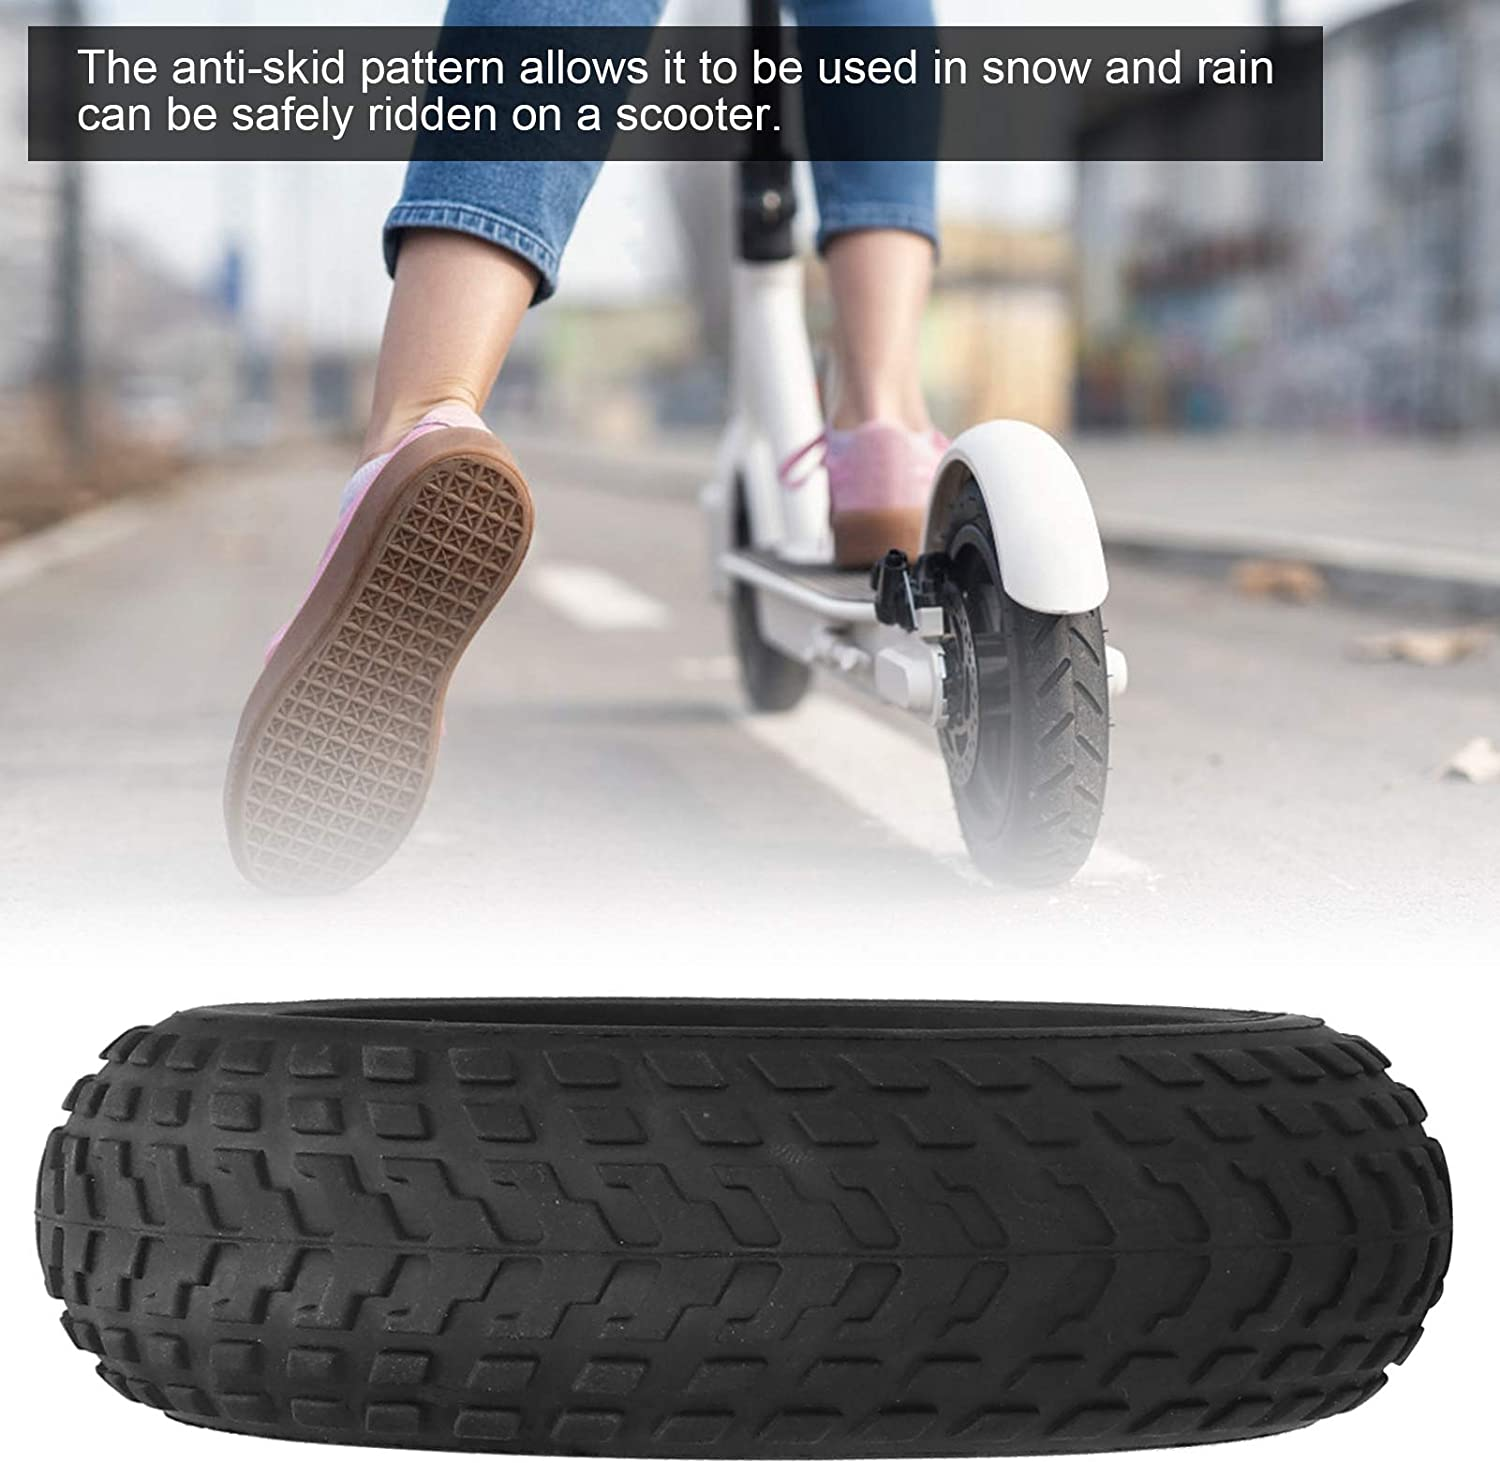 Gancon 6 inch Electric Scooter Explosion‑proof Wheel,Anti‑Skid Solid Tire Aluminum Alloy Wheel Hub Replacement for Electric Scooters